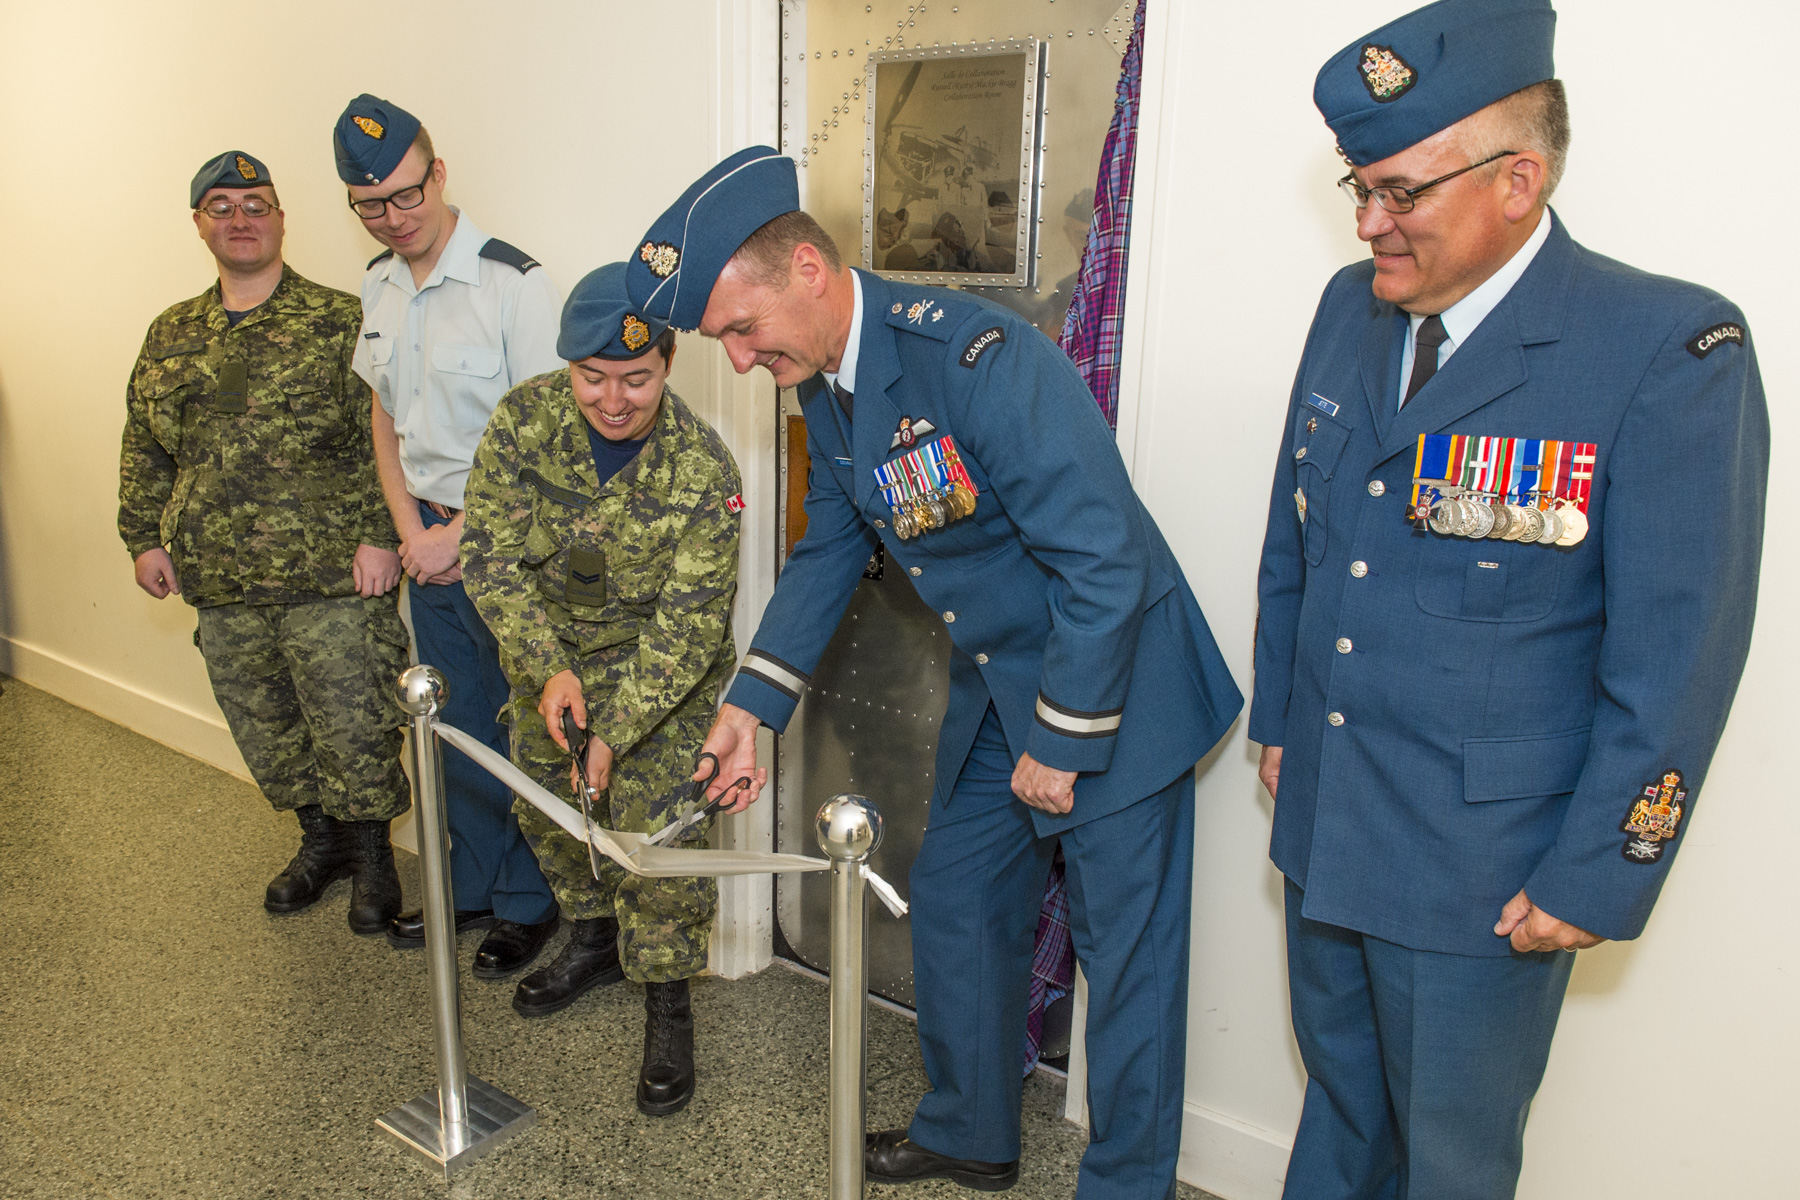 Five people, in various military uniforms stand with a door behind them. Two of them use scissors to cut a ribbon strung between two metal posts in front of them.